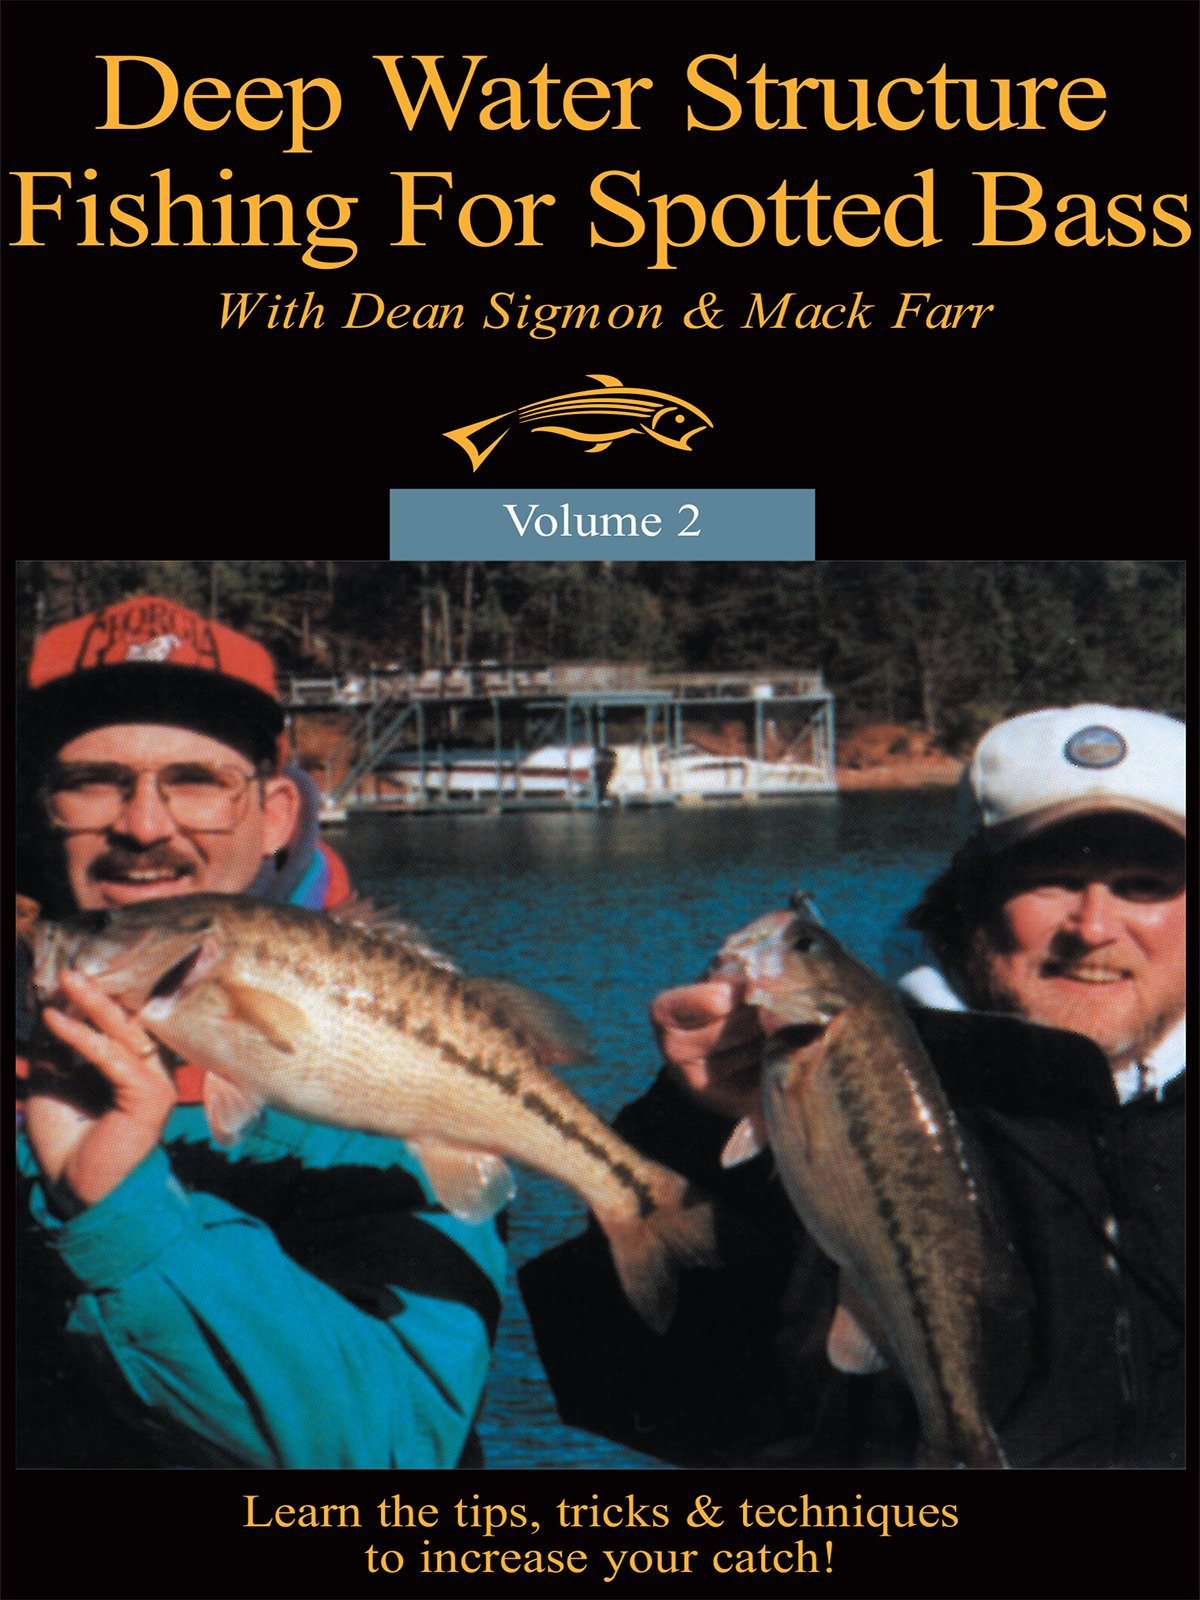 Deep Water Structure Fishing For Spotted Bass With Mack Farr on Amazon Prime Instant Video UK